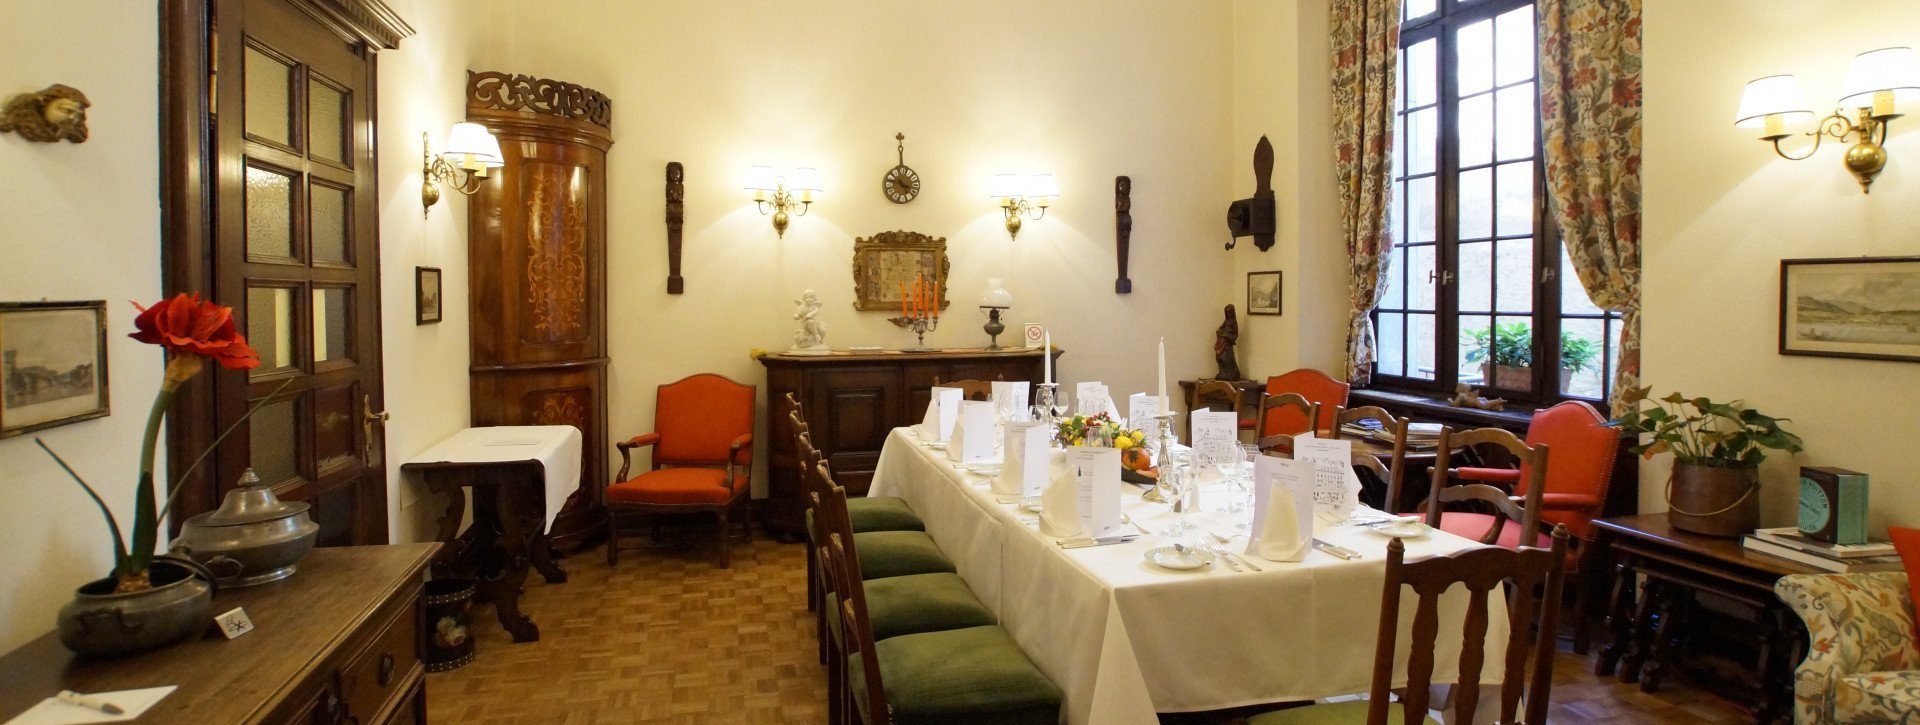 Taverna degli Angeli with antic furniture